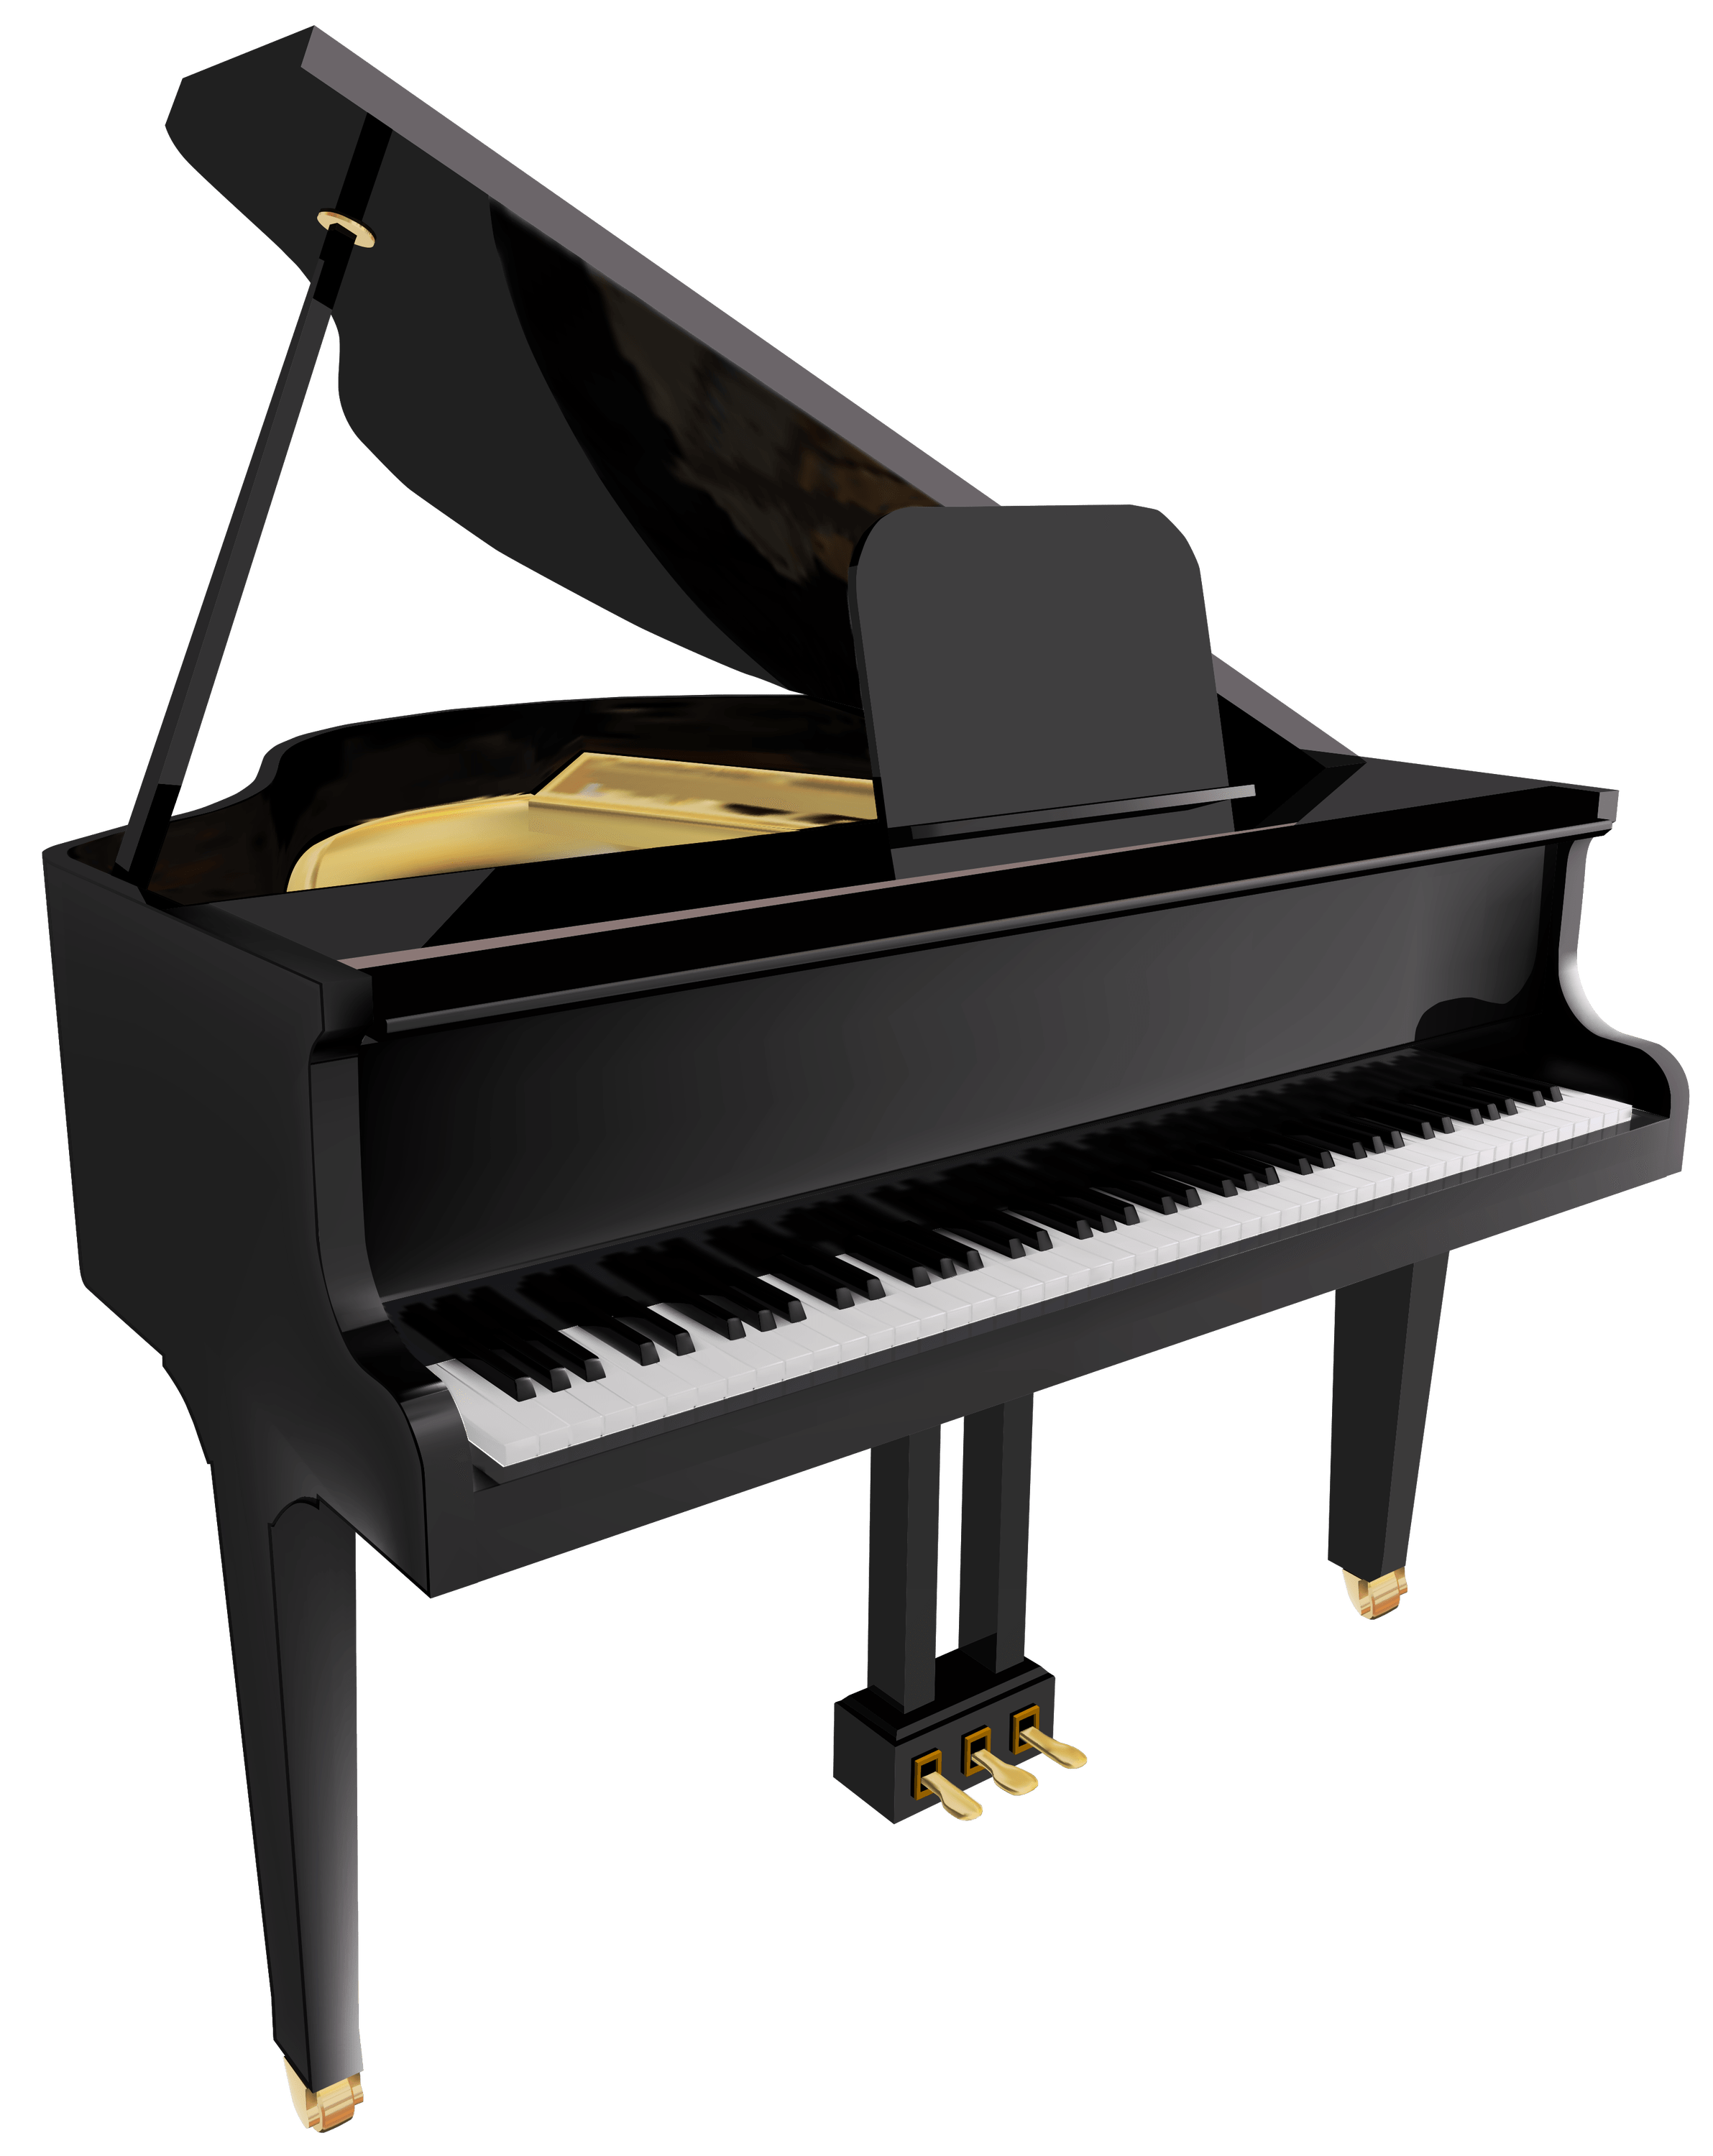 Transparent png stickpng objects. White clipart piano